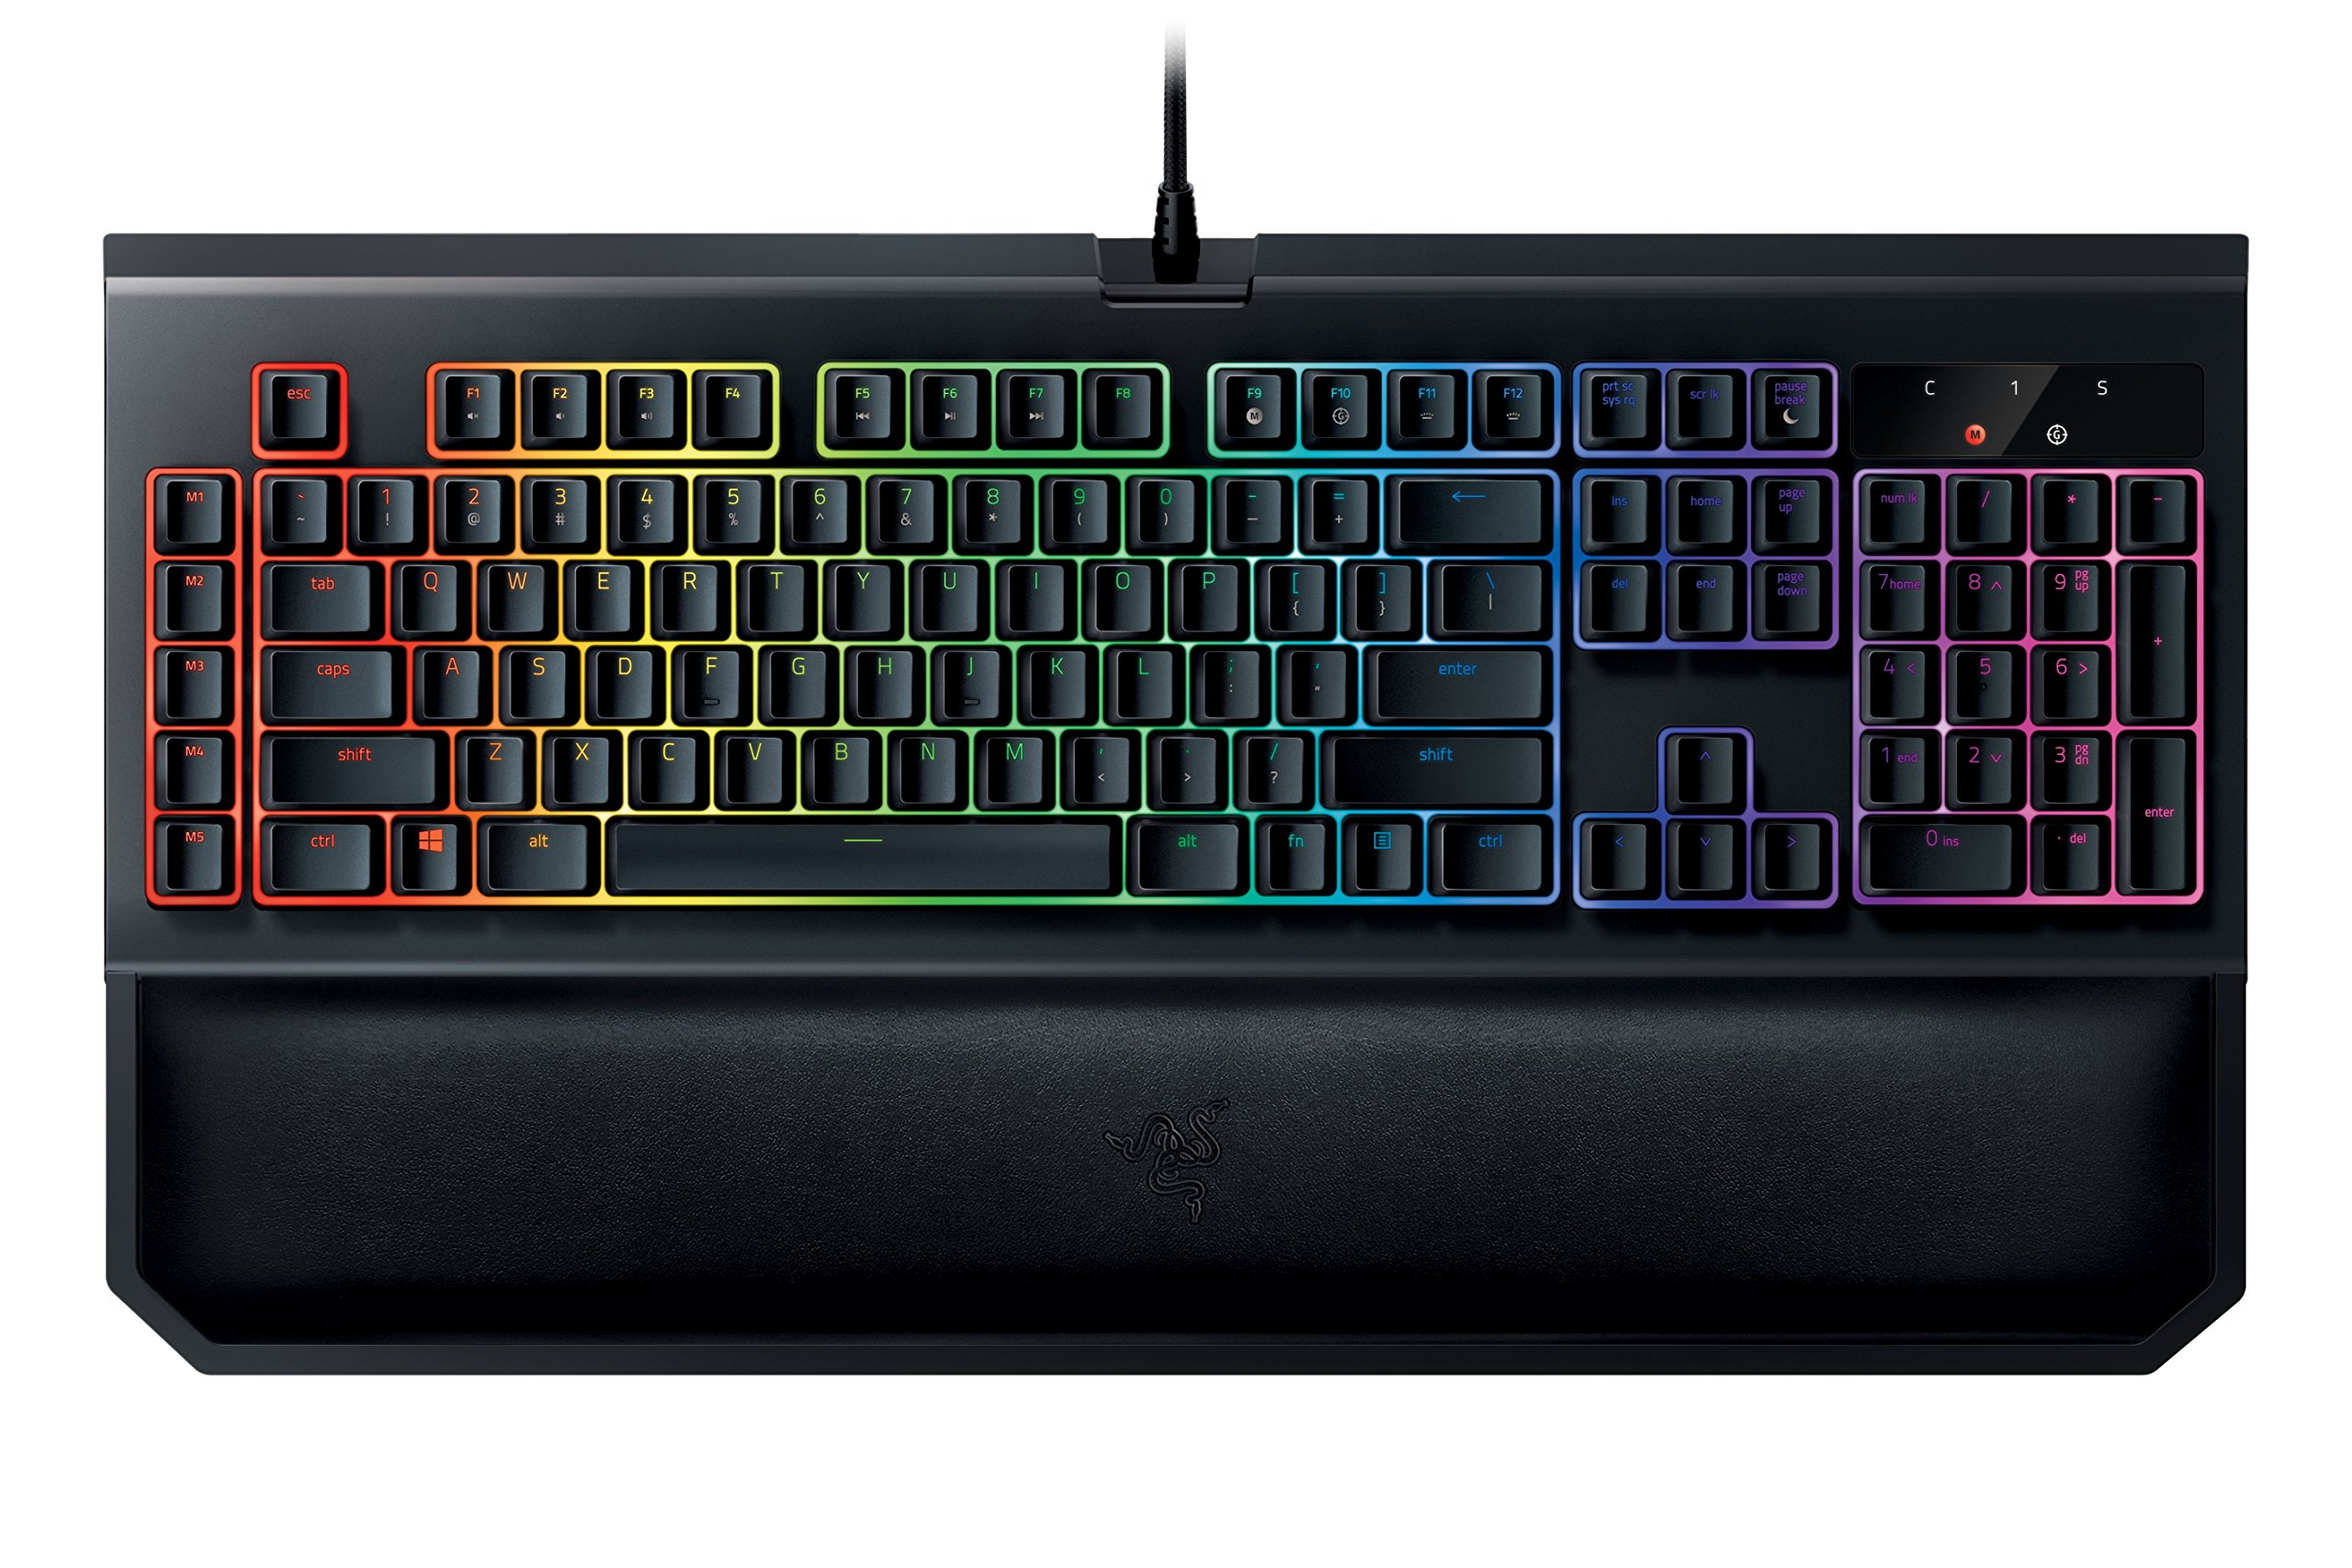 Razer BlackWidow Chroma V2 - RGB Mechanical Gaming Keyboard - Ergonomic Wrist Rest - Tactile & Clicky Razer Green Switches by Razer